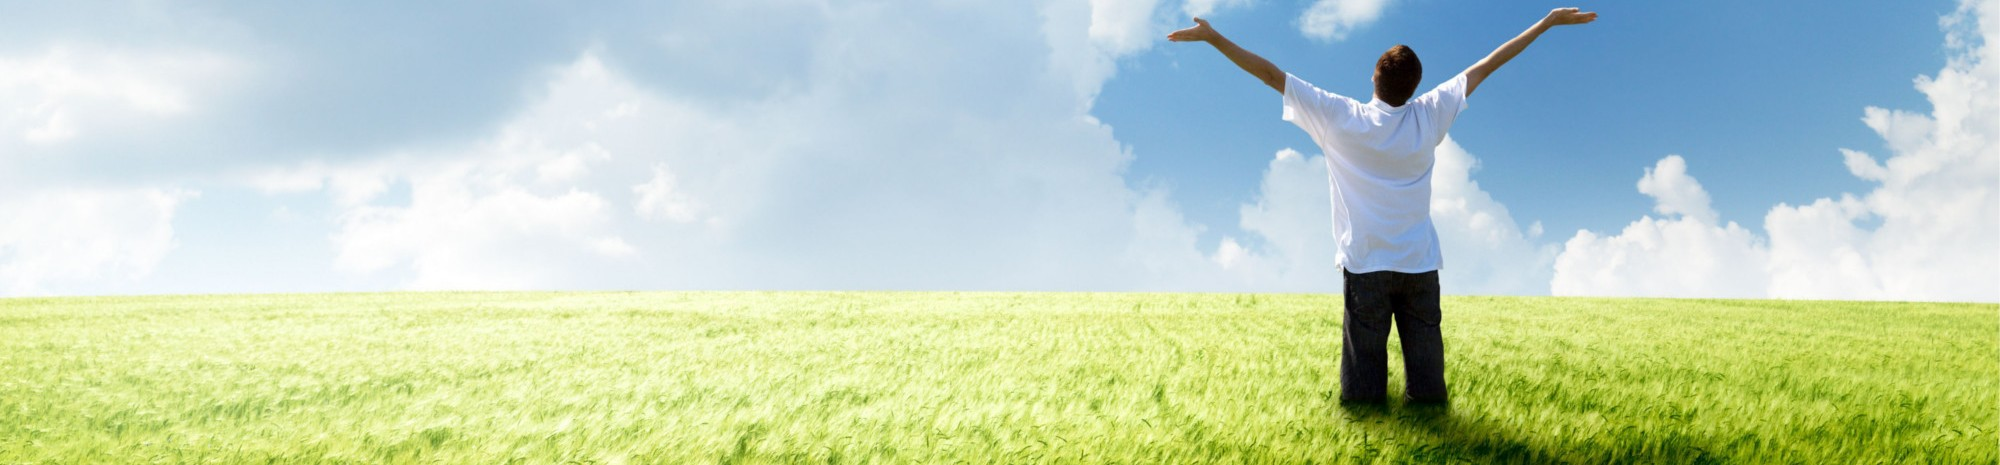 counseling-banner-freedom1-e1400267413274